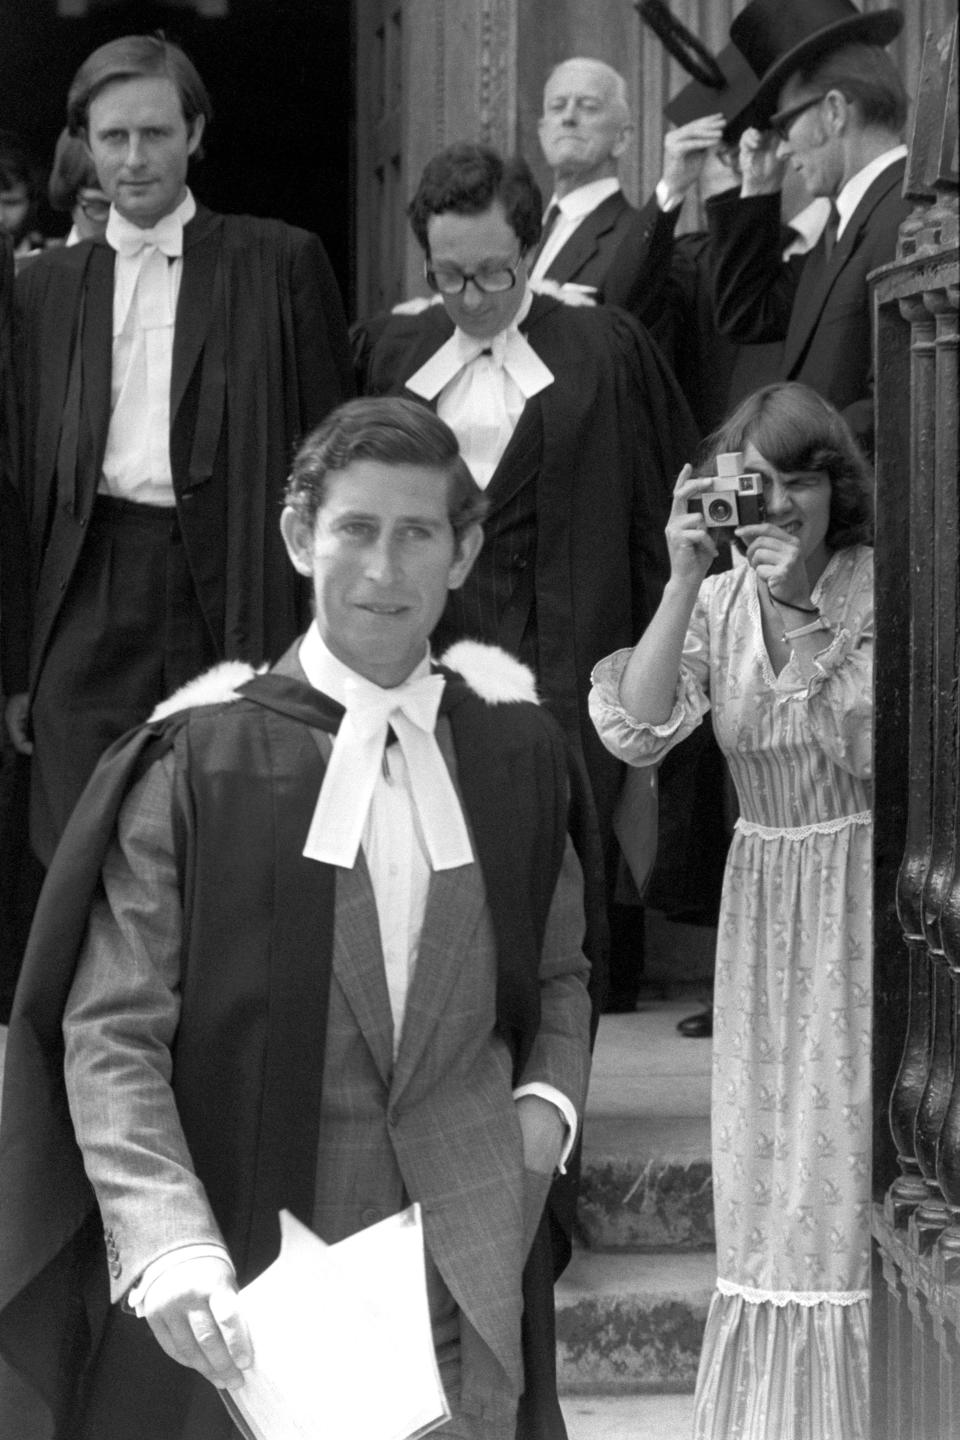 Prince Charles outside Senate House, Cambridge, after being awarded a Master of Arts degree from the university in 1975. He had previously graduated in 1970 with a 2:2 after three years of university. (PA Images)